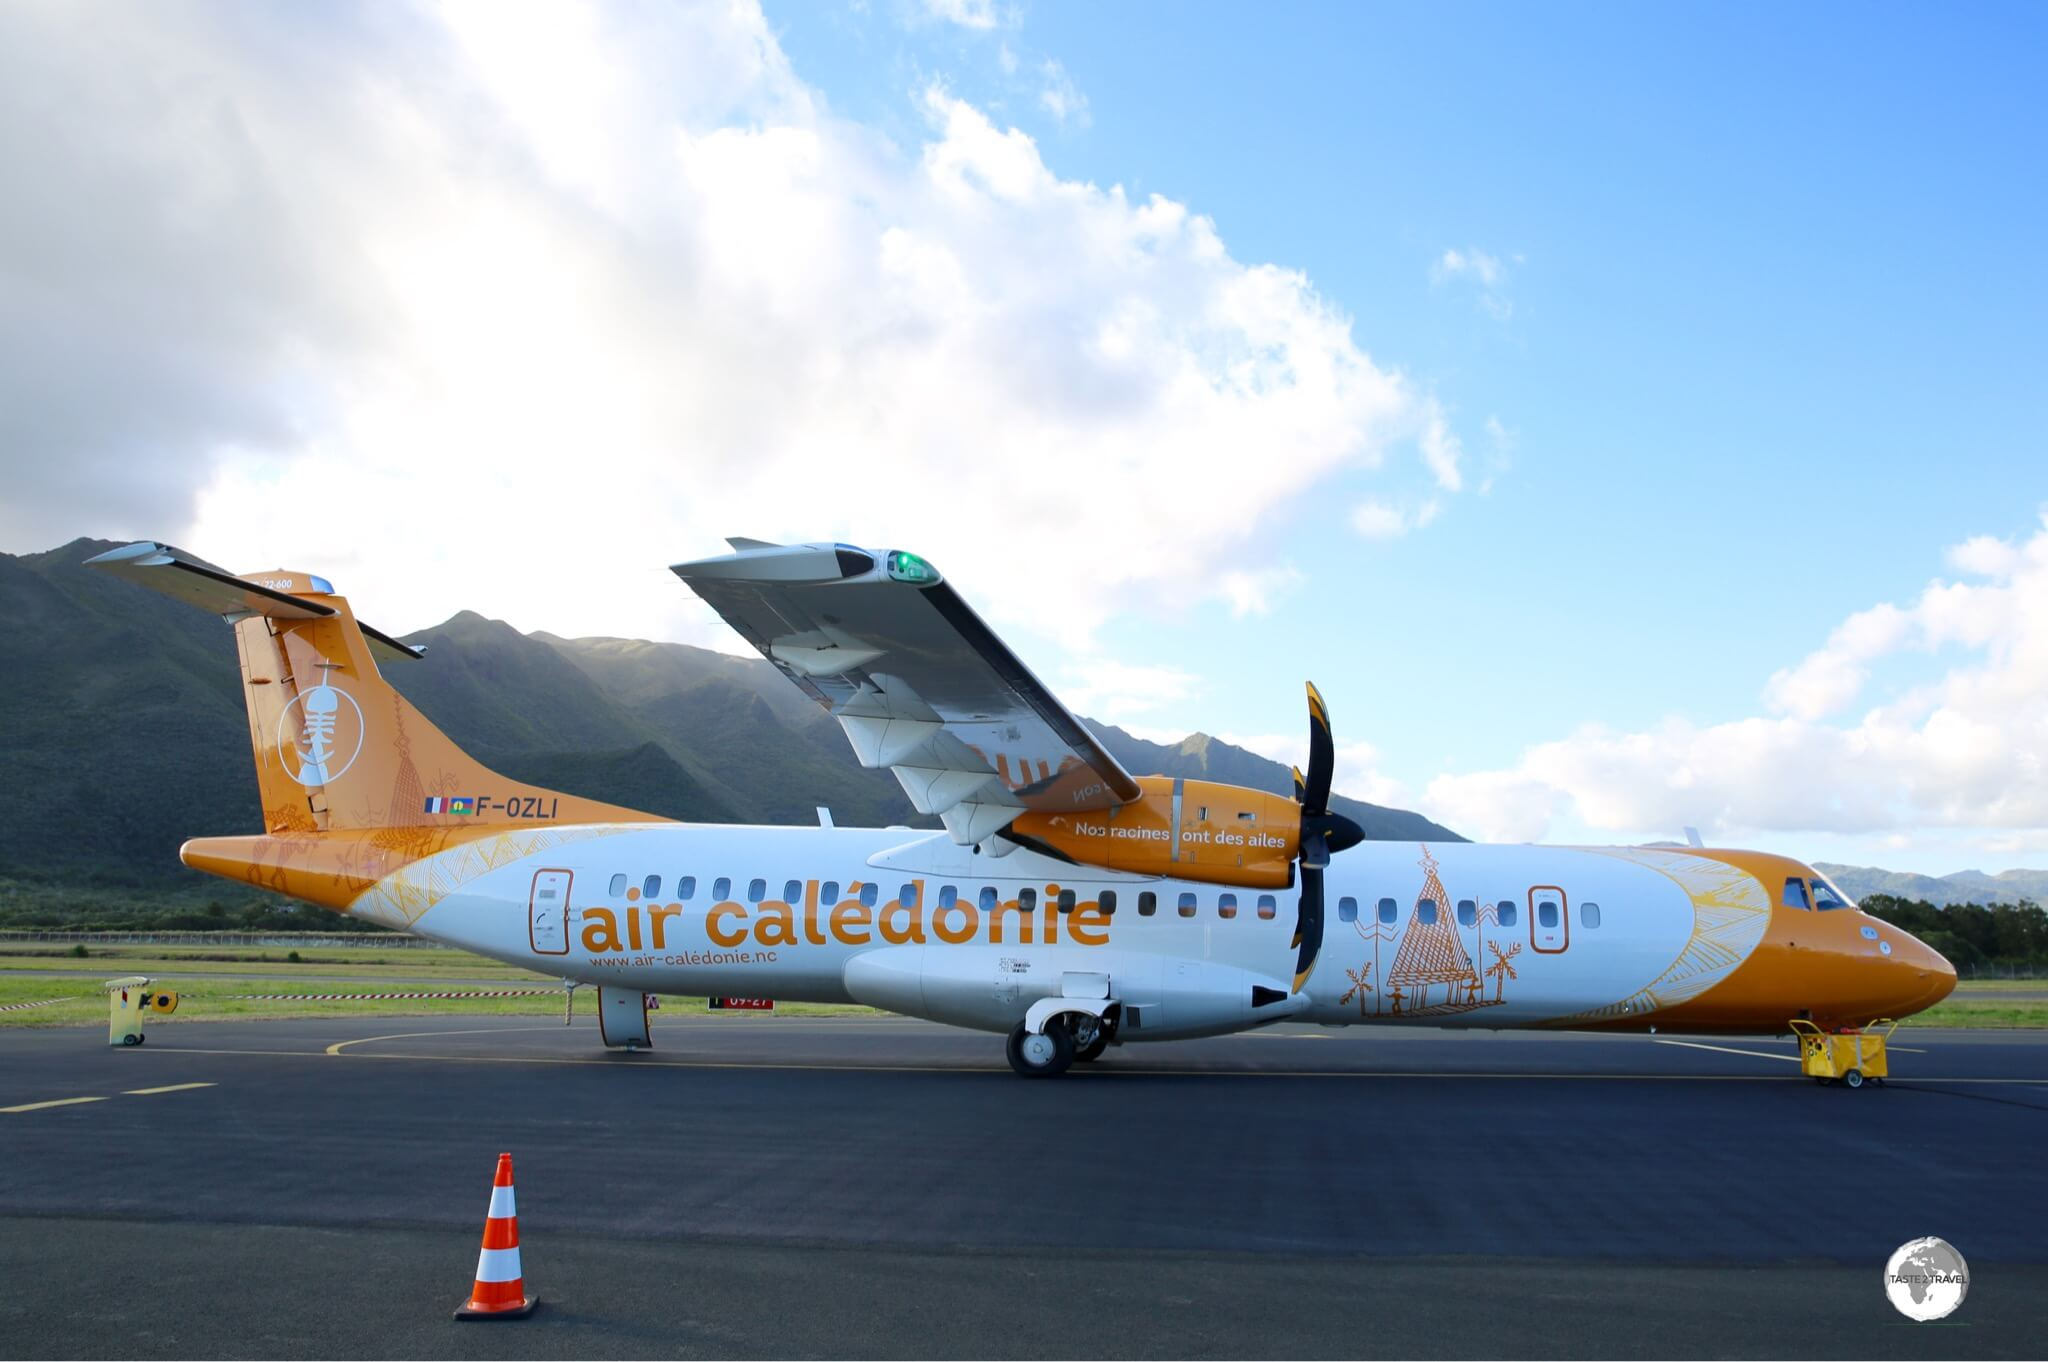 An Air Caledonie flight, ready to depart Koné airport.